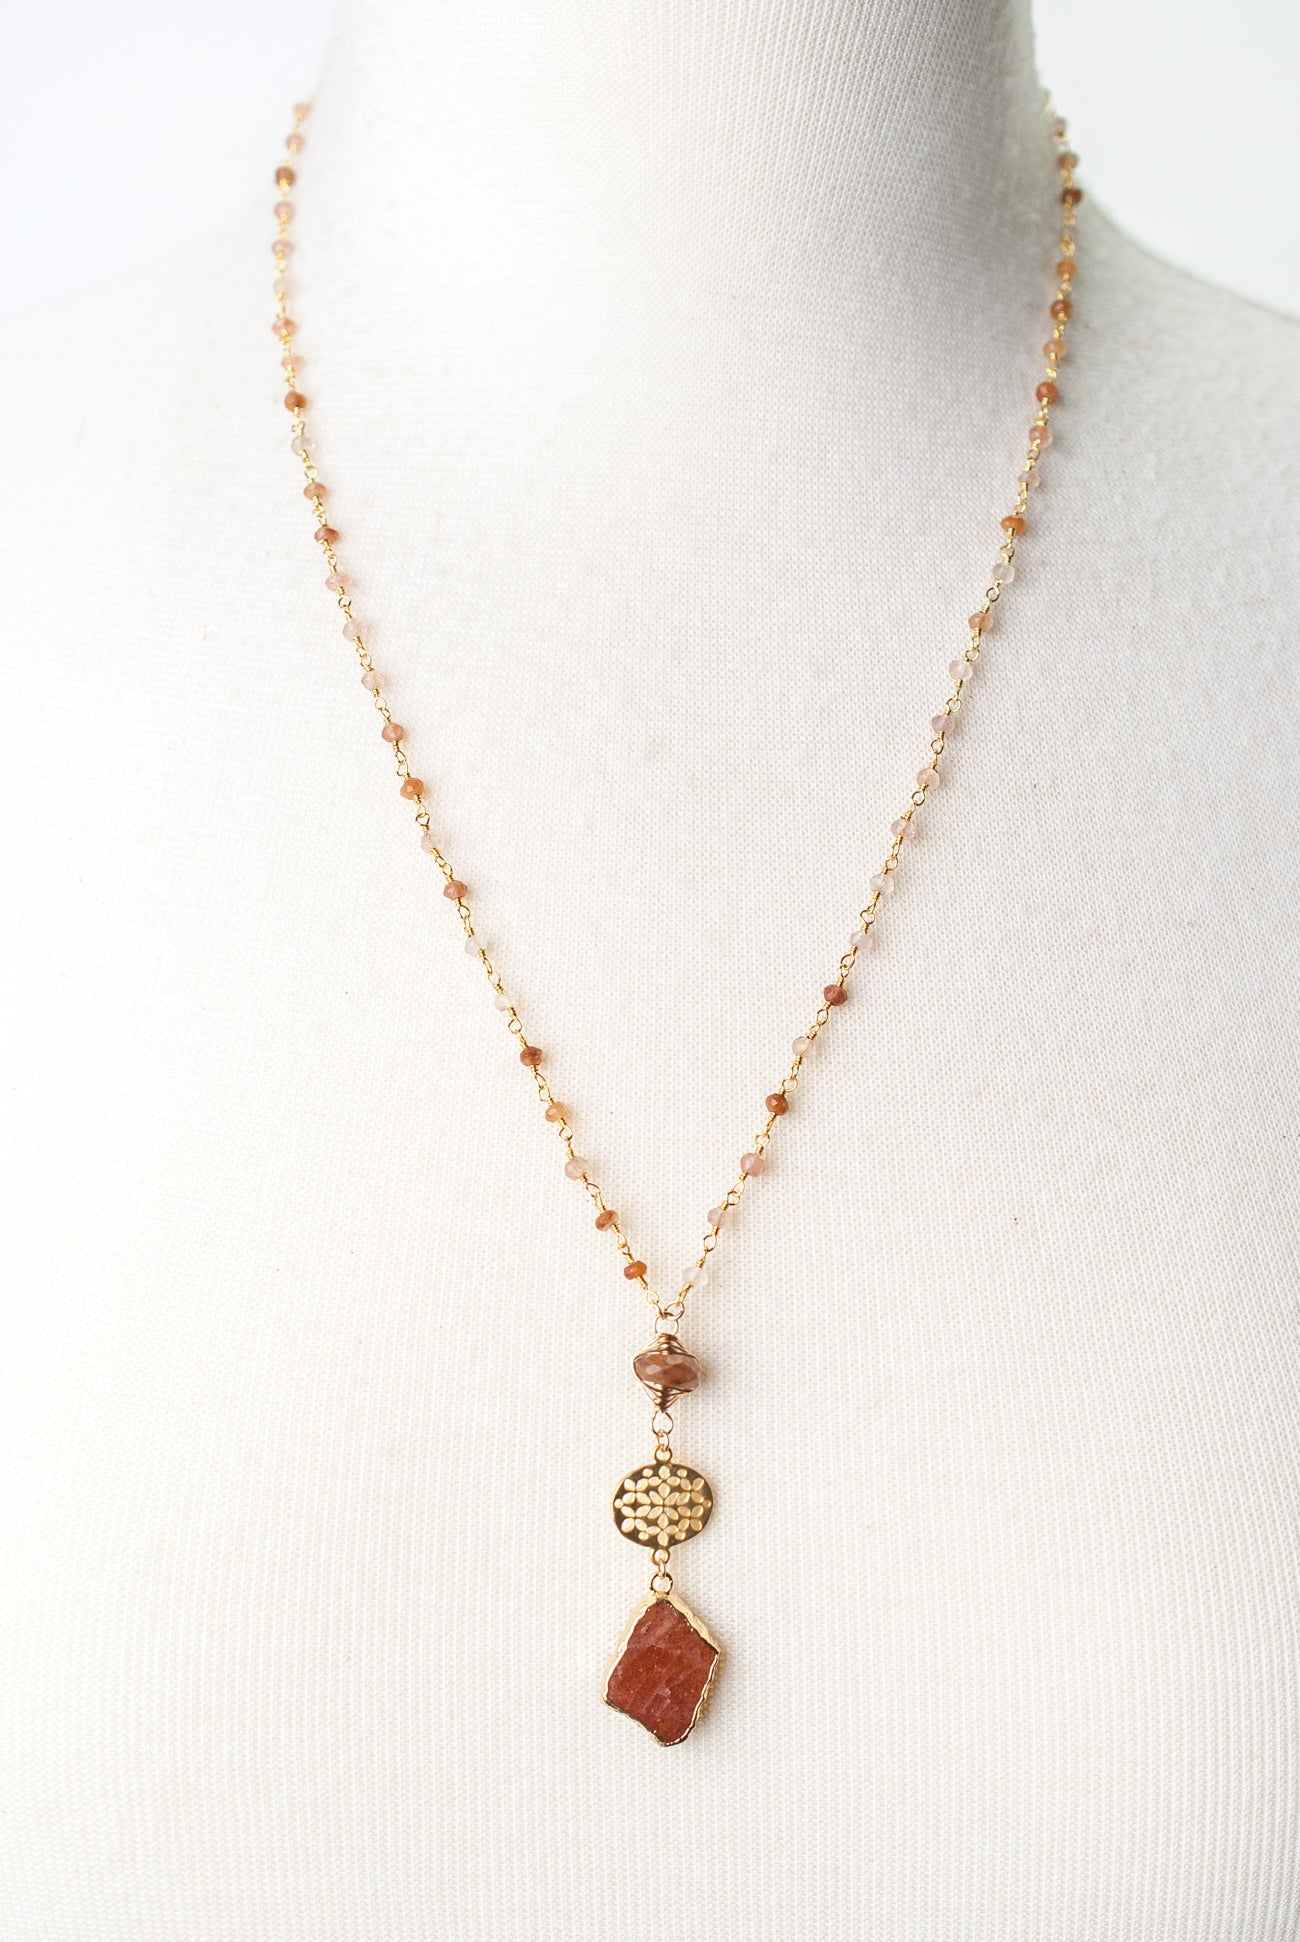 "Limited Edition 22.5-24.5"" Hessonite Garnet, Copper Rutilated Quartz, Sunstone Focal Necklace"